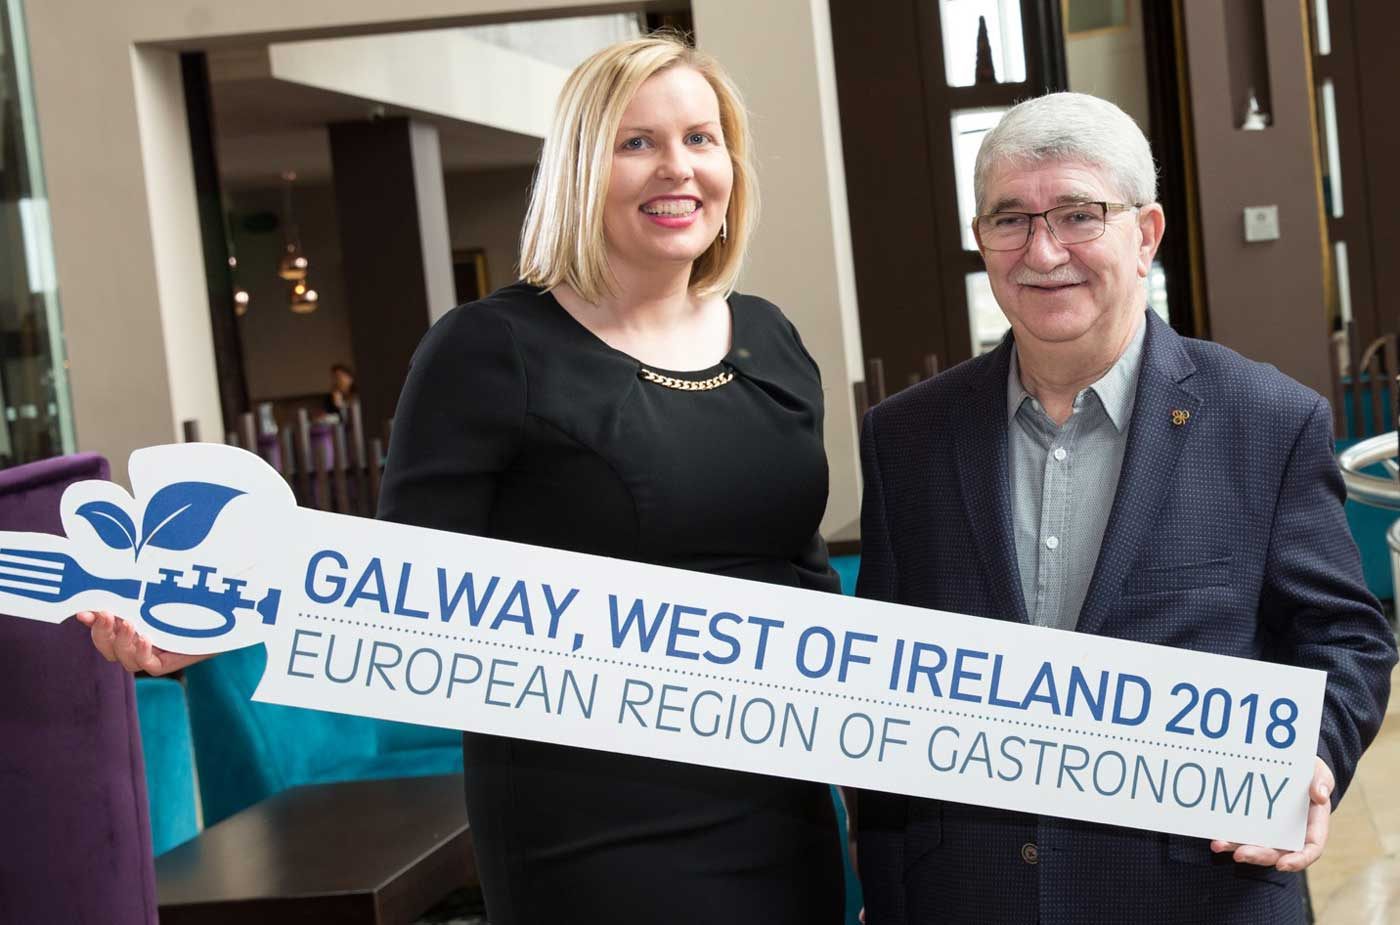 Hotelier-Ronnie-Counihan-&--Elaine-Donohue-Programme-Lead-for-Galway-&-West-of-Ireland,-European-Region-of-Gastronomy